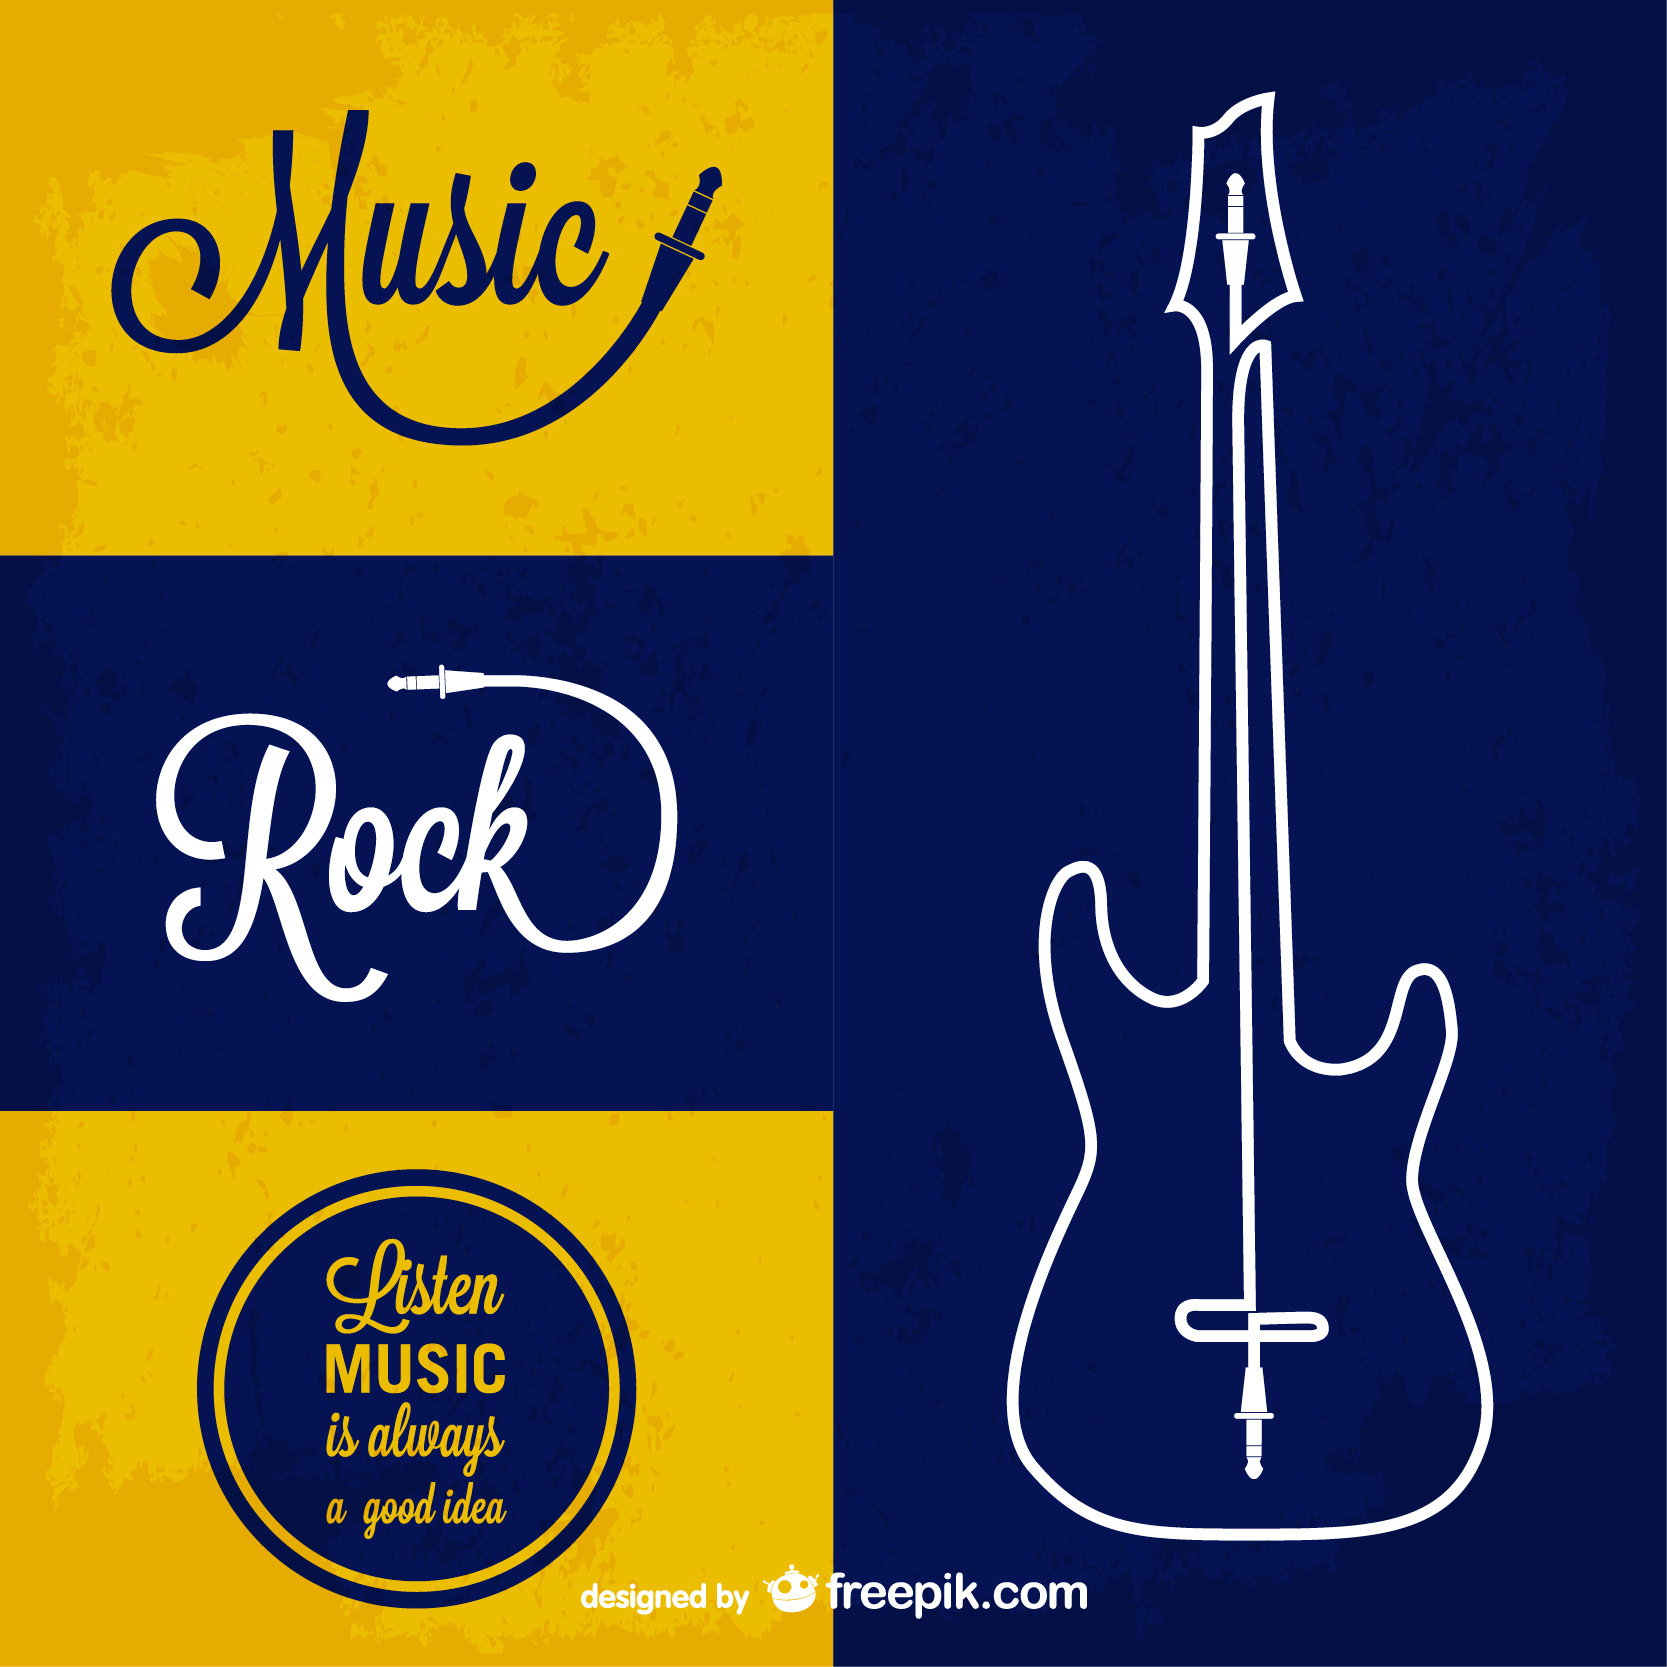 Rocking Music Free vector Background